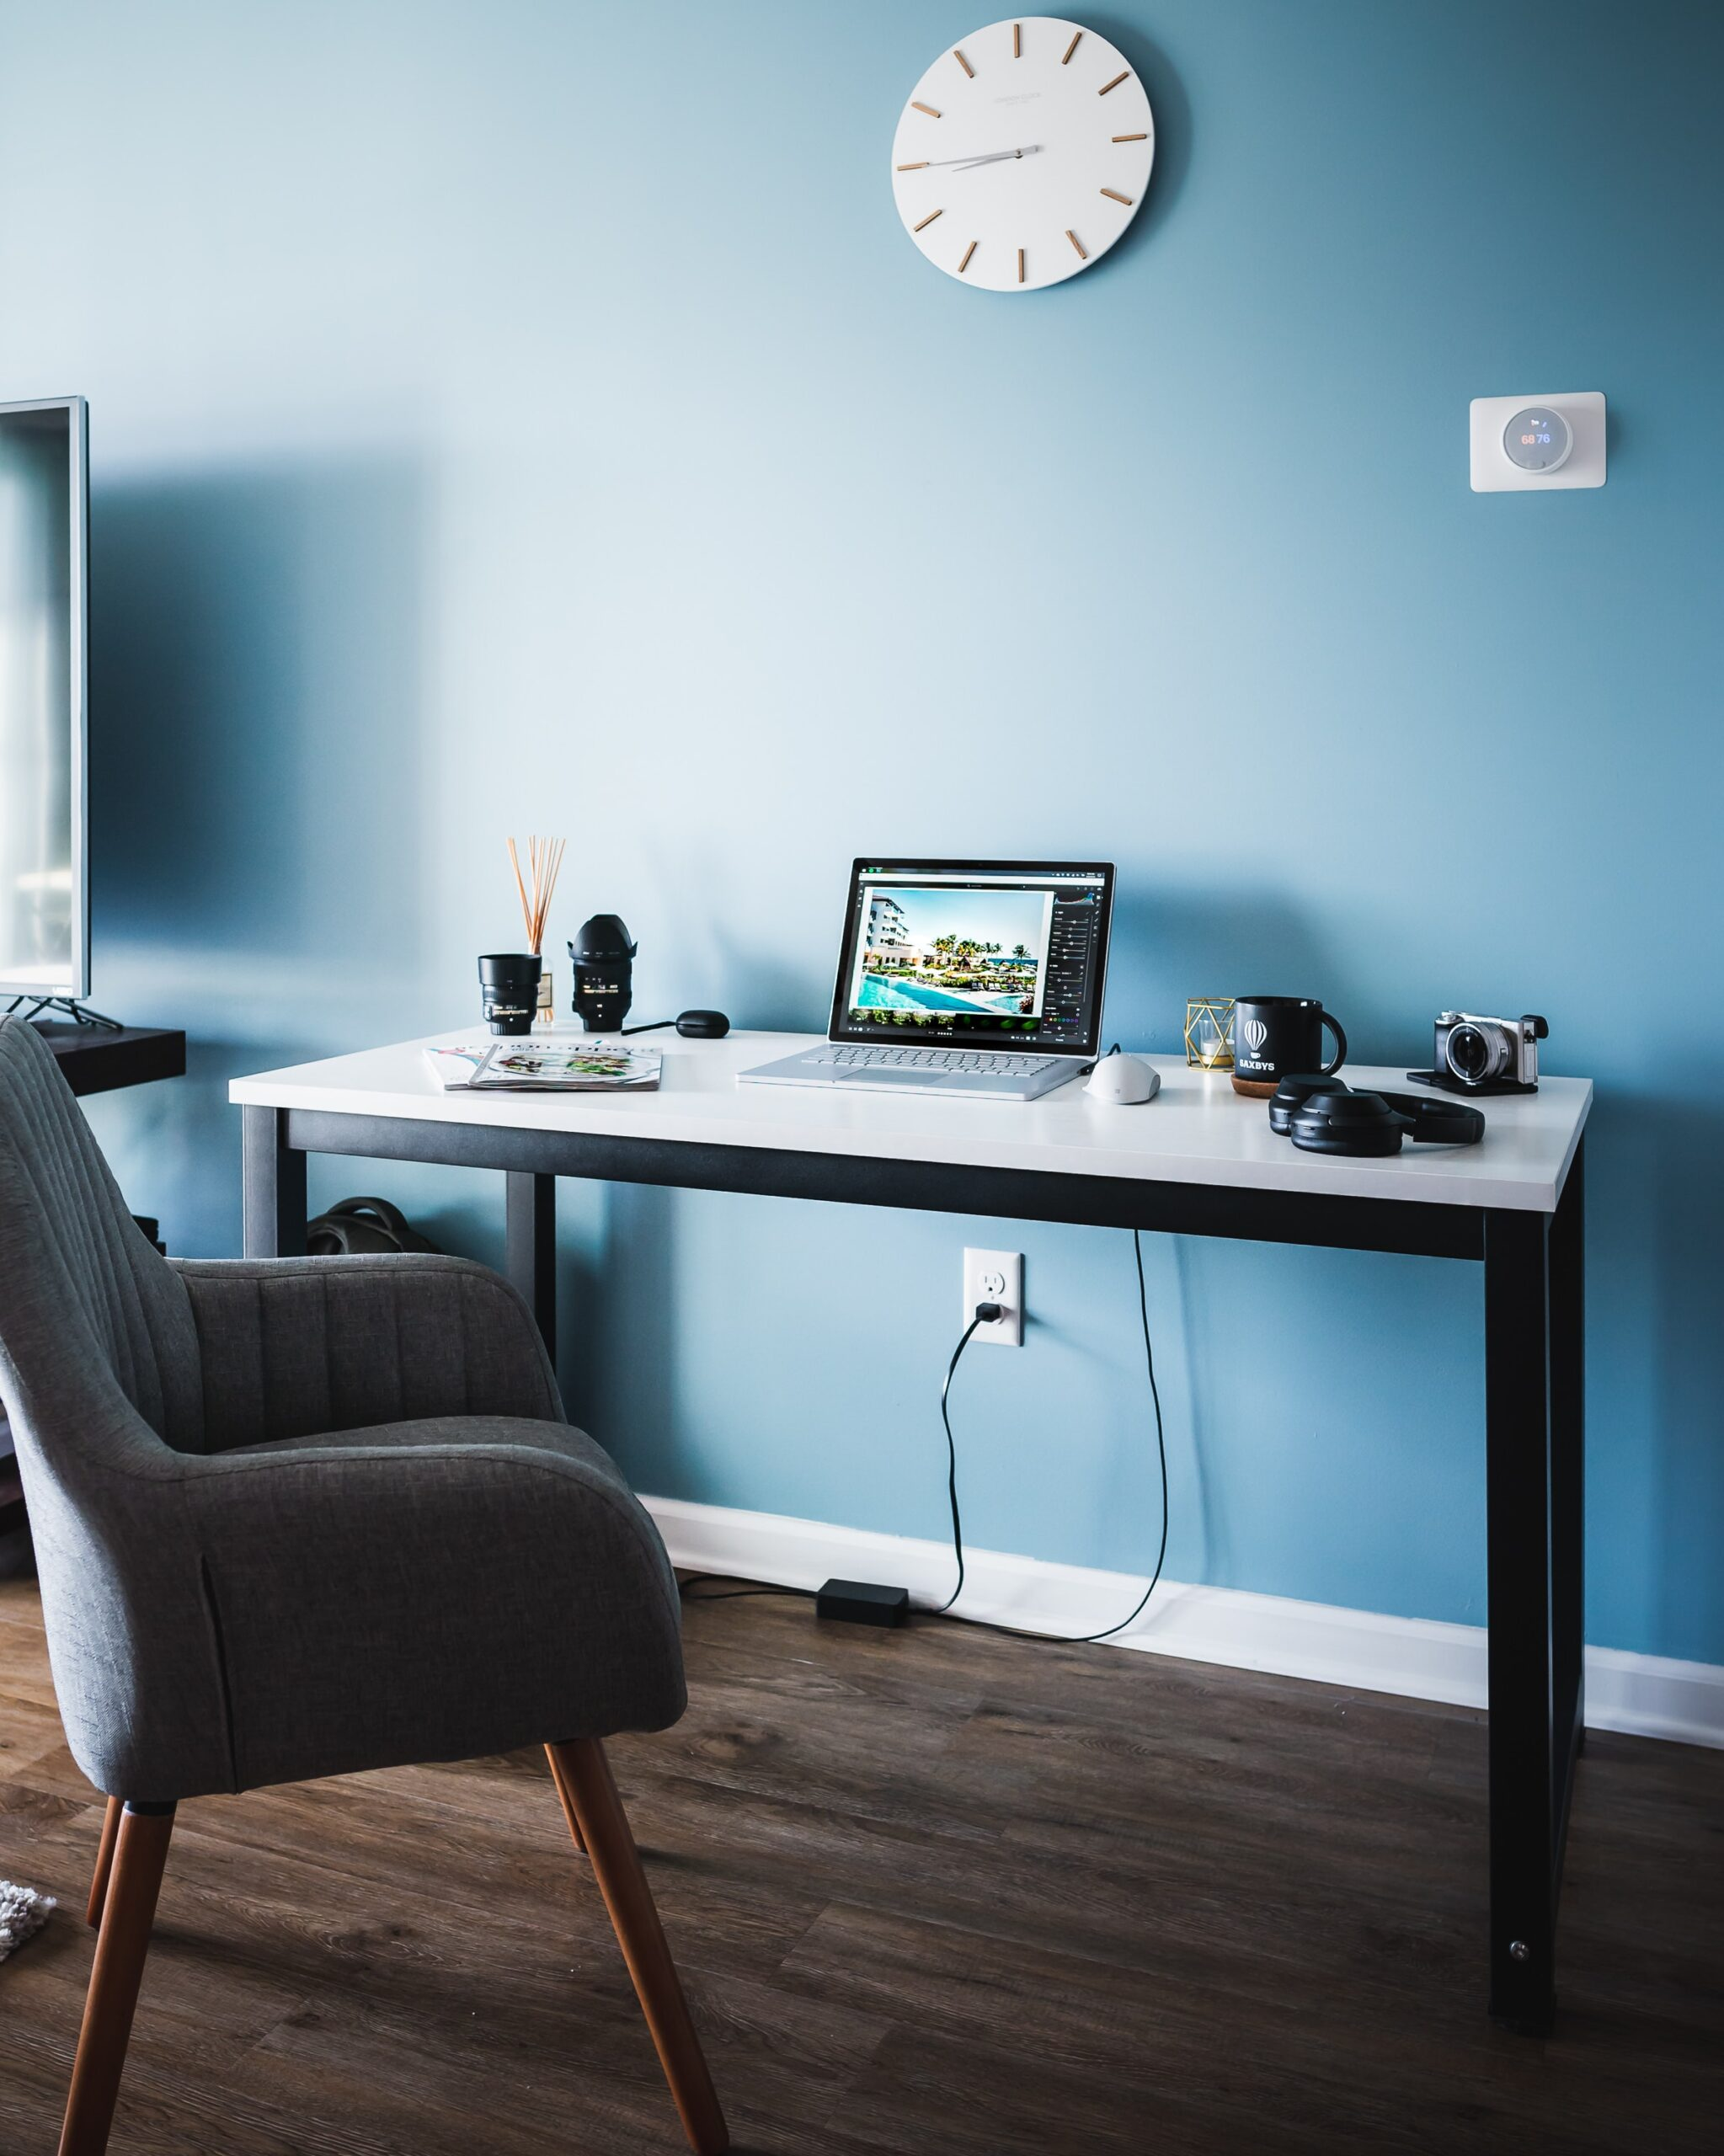 make-working-from-home-easy-with-these-3-tips